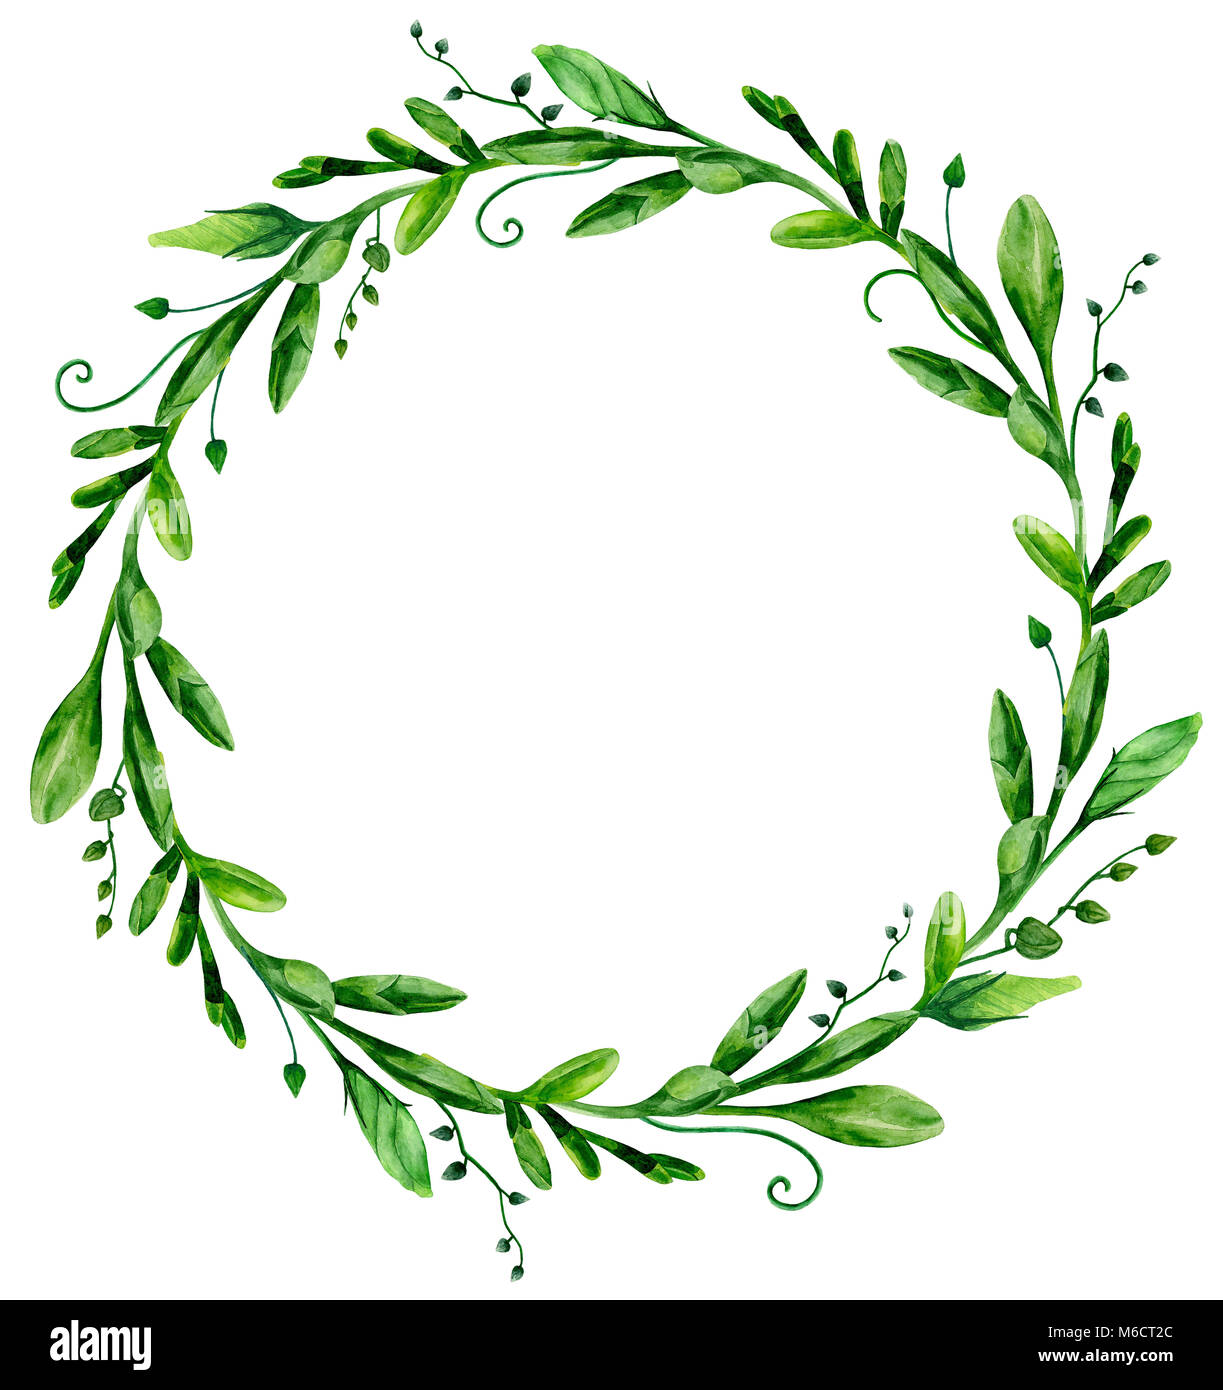 Watercolor greenery wreath frame. Green arrangement clip art - Stock Image